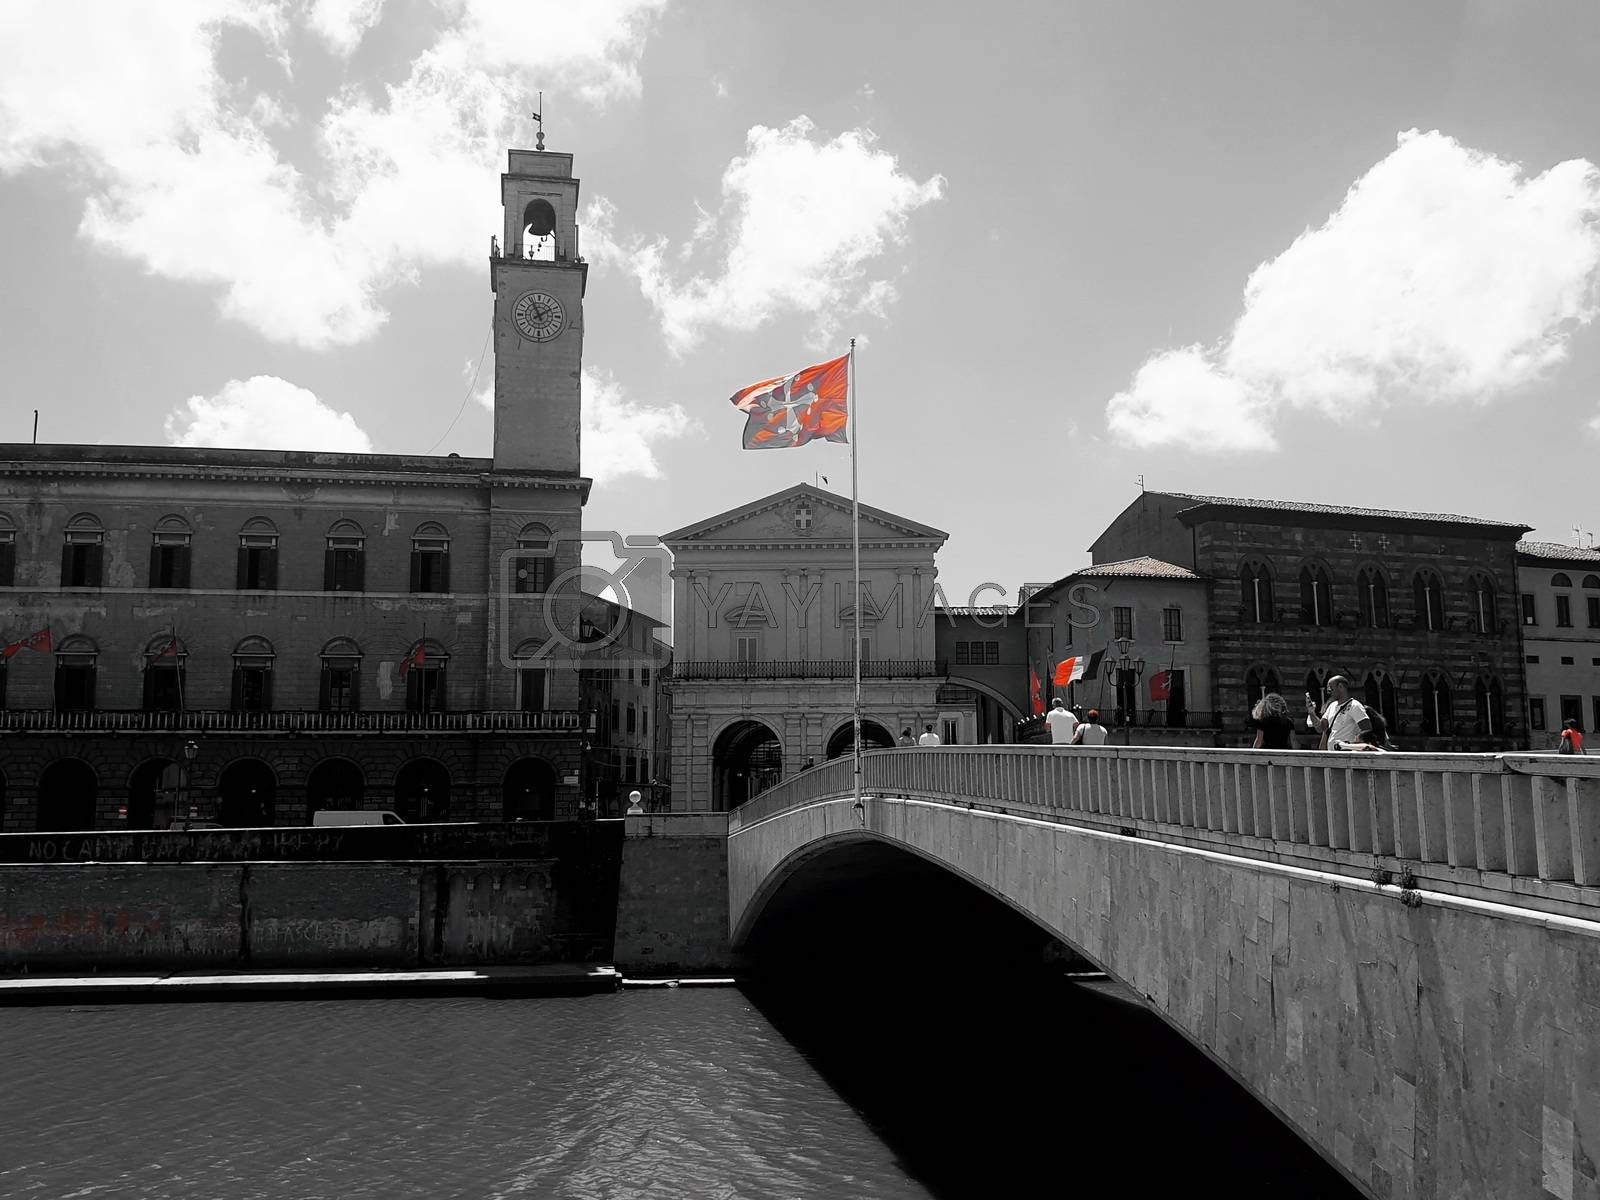 The red flag of Pisa in red on a black and white picture of the brdige called Ponte di Mezzo